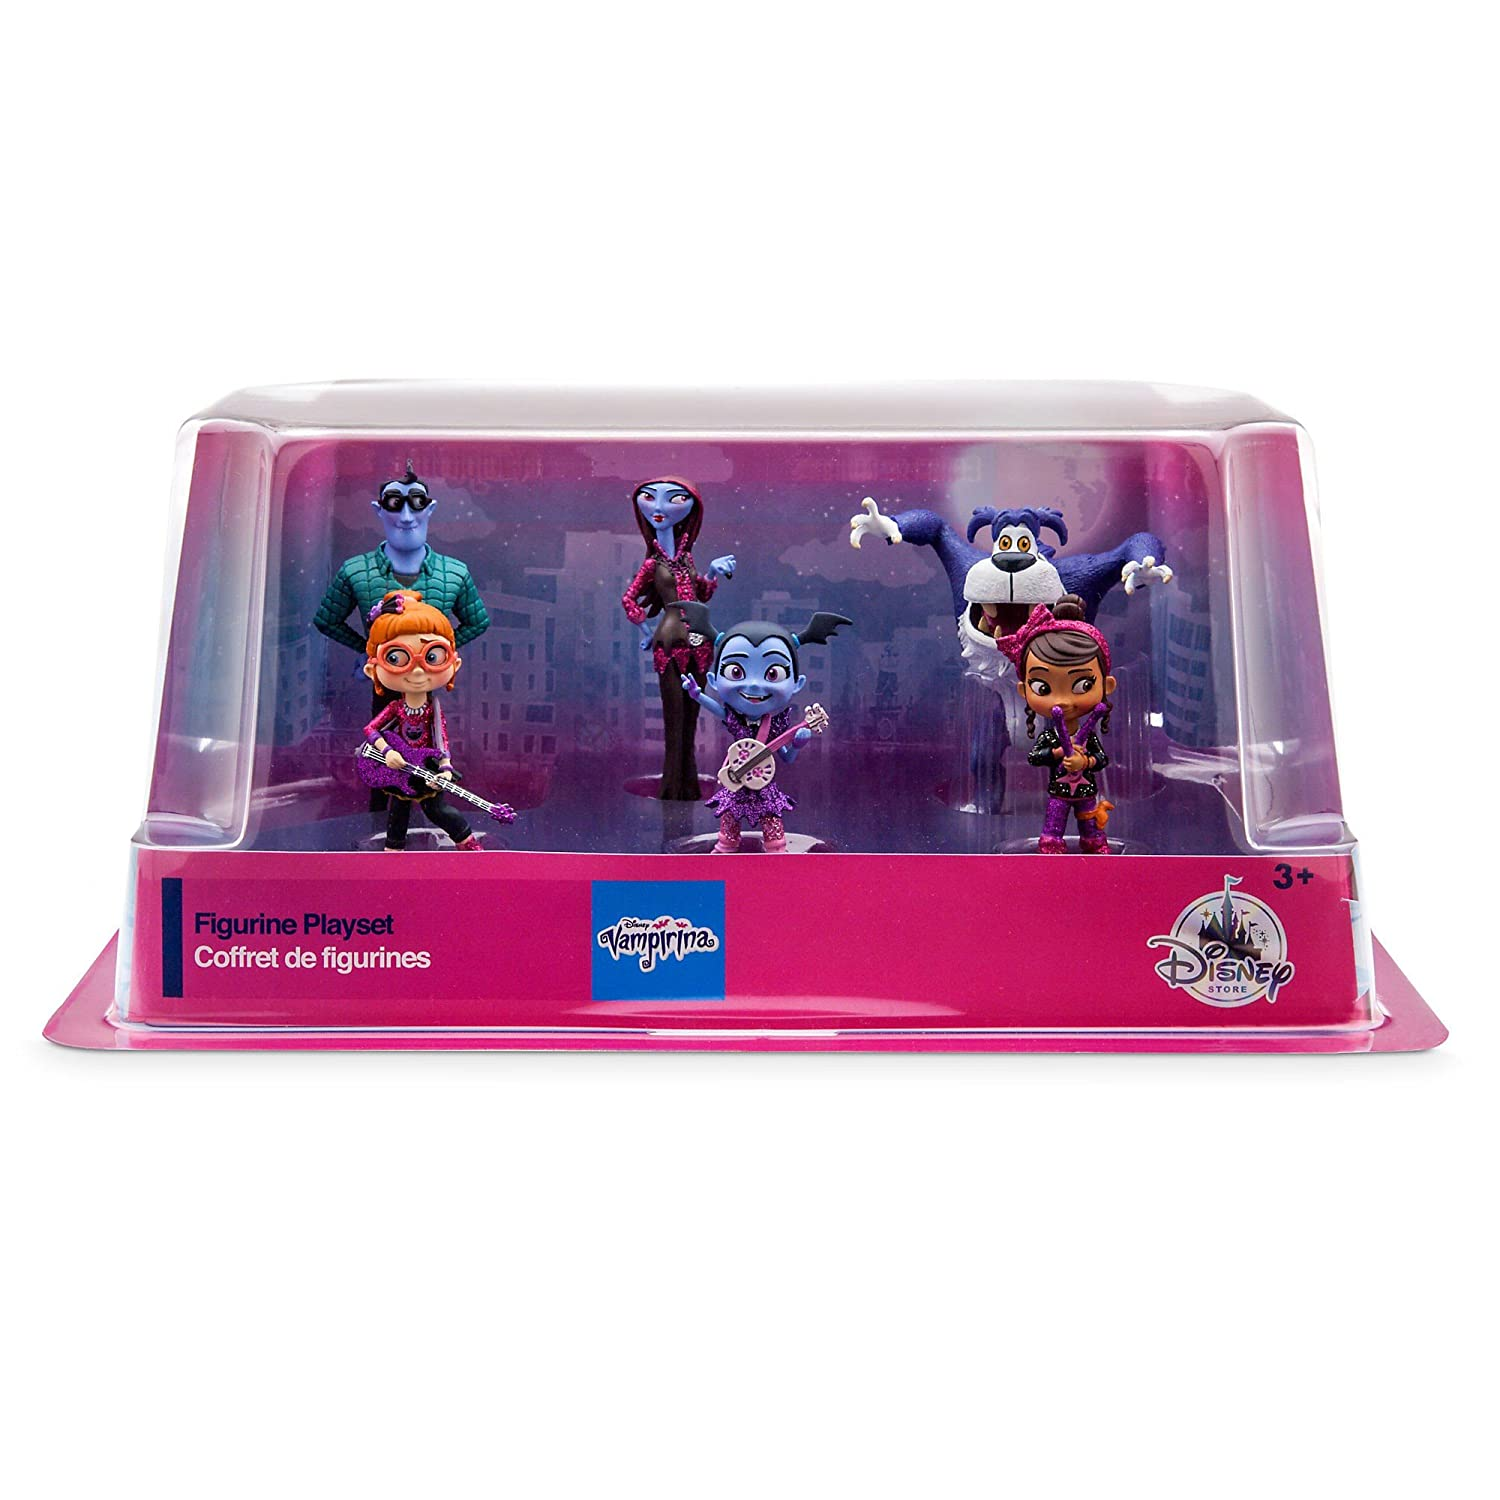 Disney Junior Vampirina Figure Playset